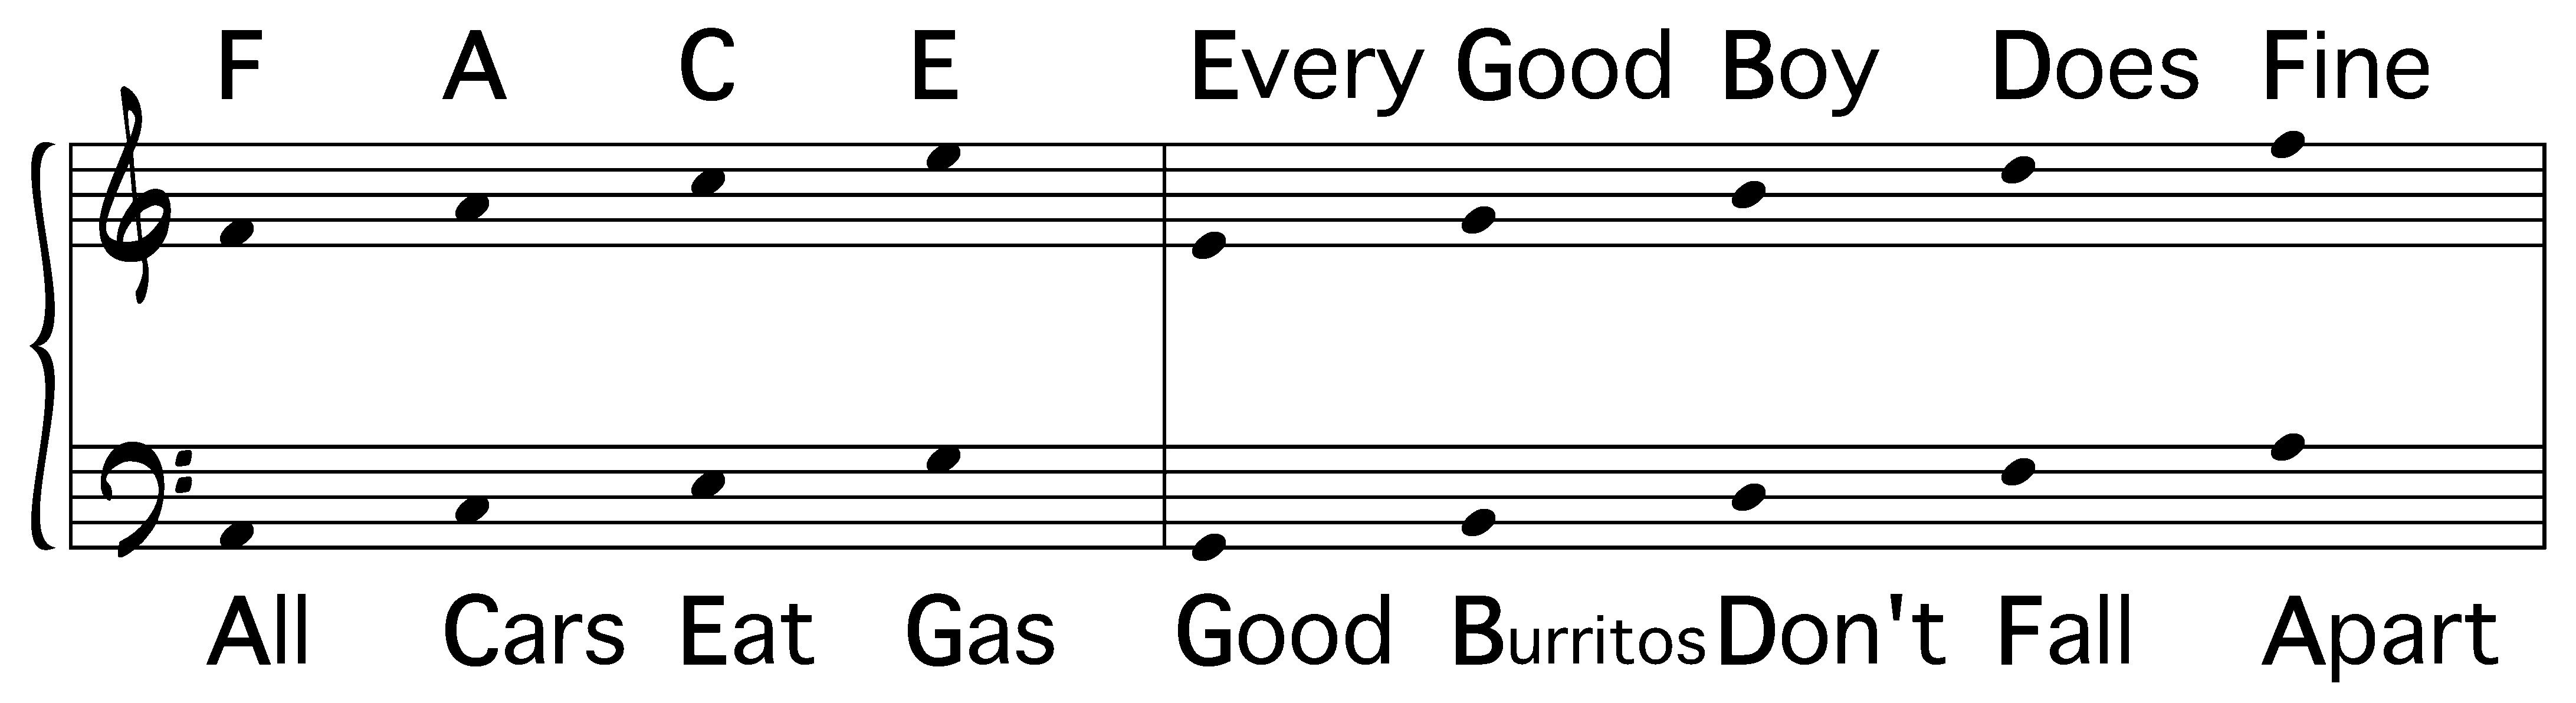 Mnemonic Notation Every Good Boy Does Fine